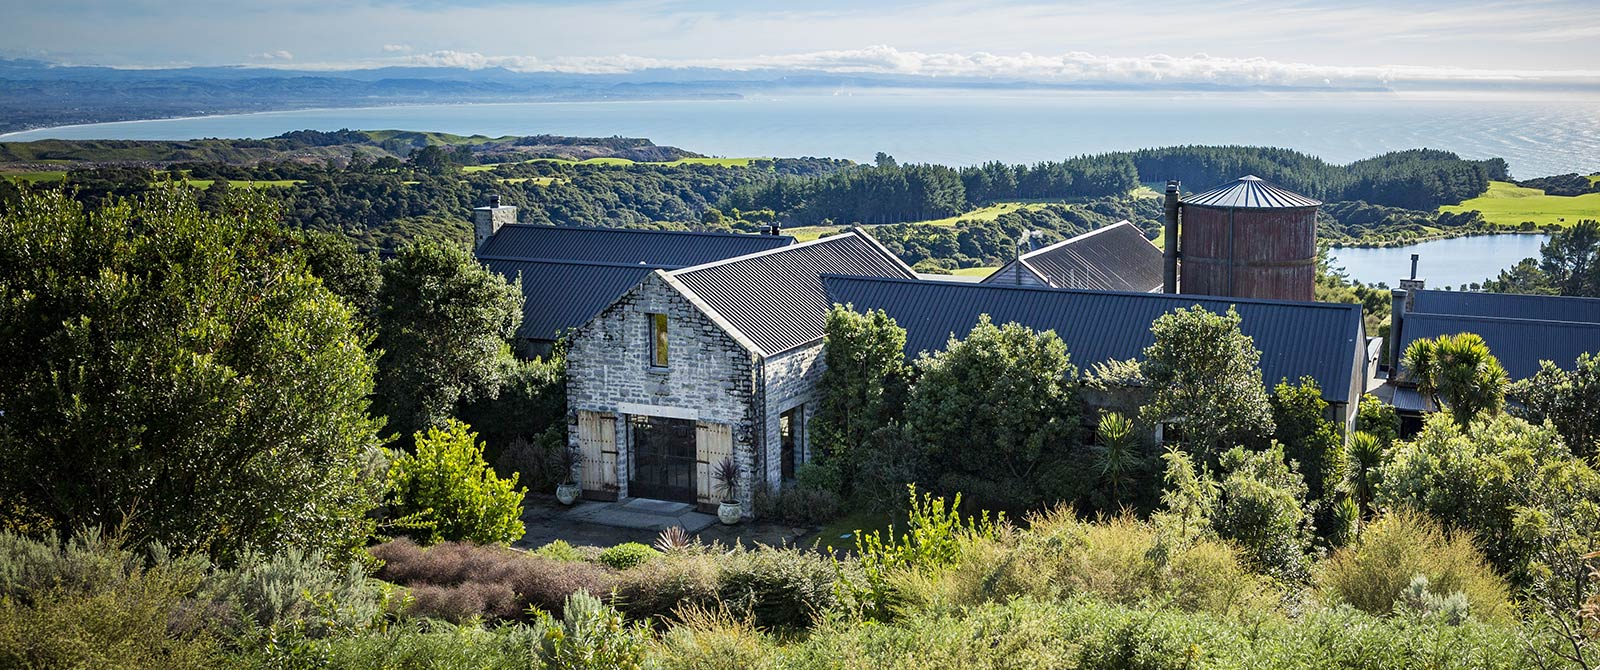 Cape Kidnappers - Golf Course and Luxury Lodge - Hawke's Bay New Zealand